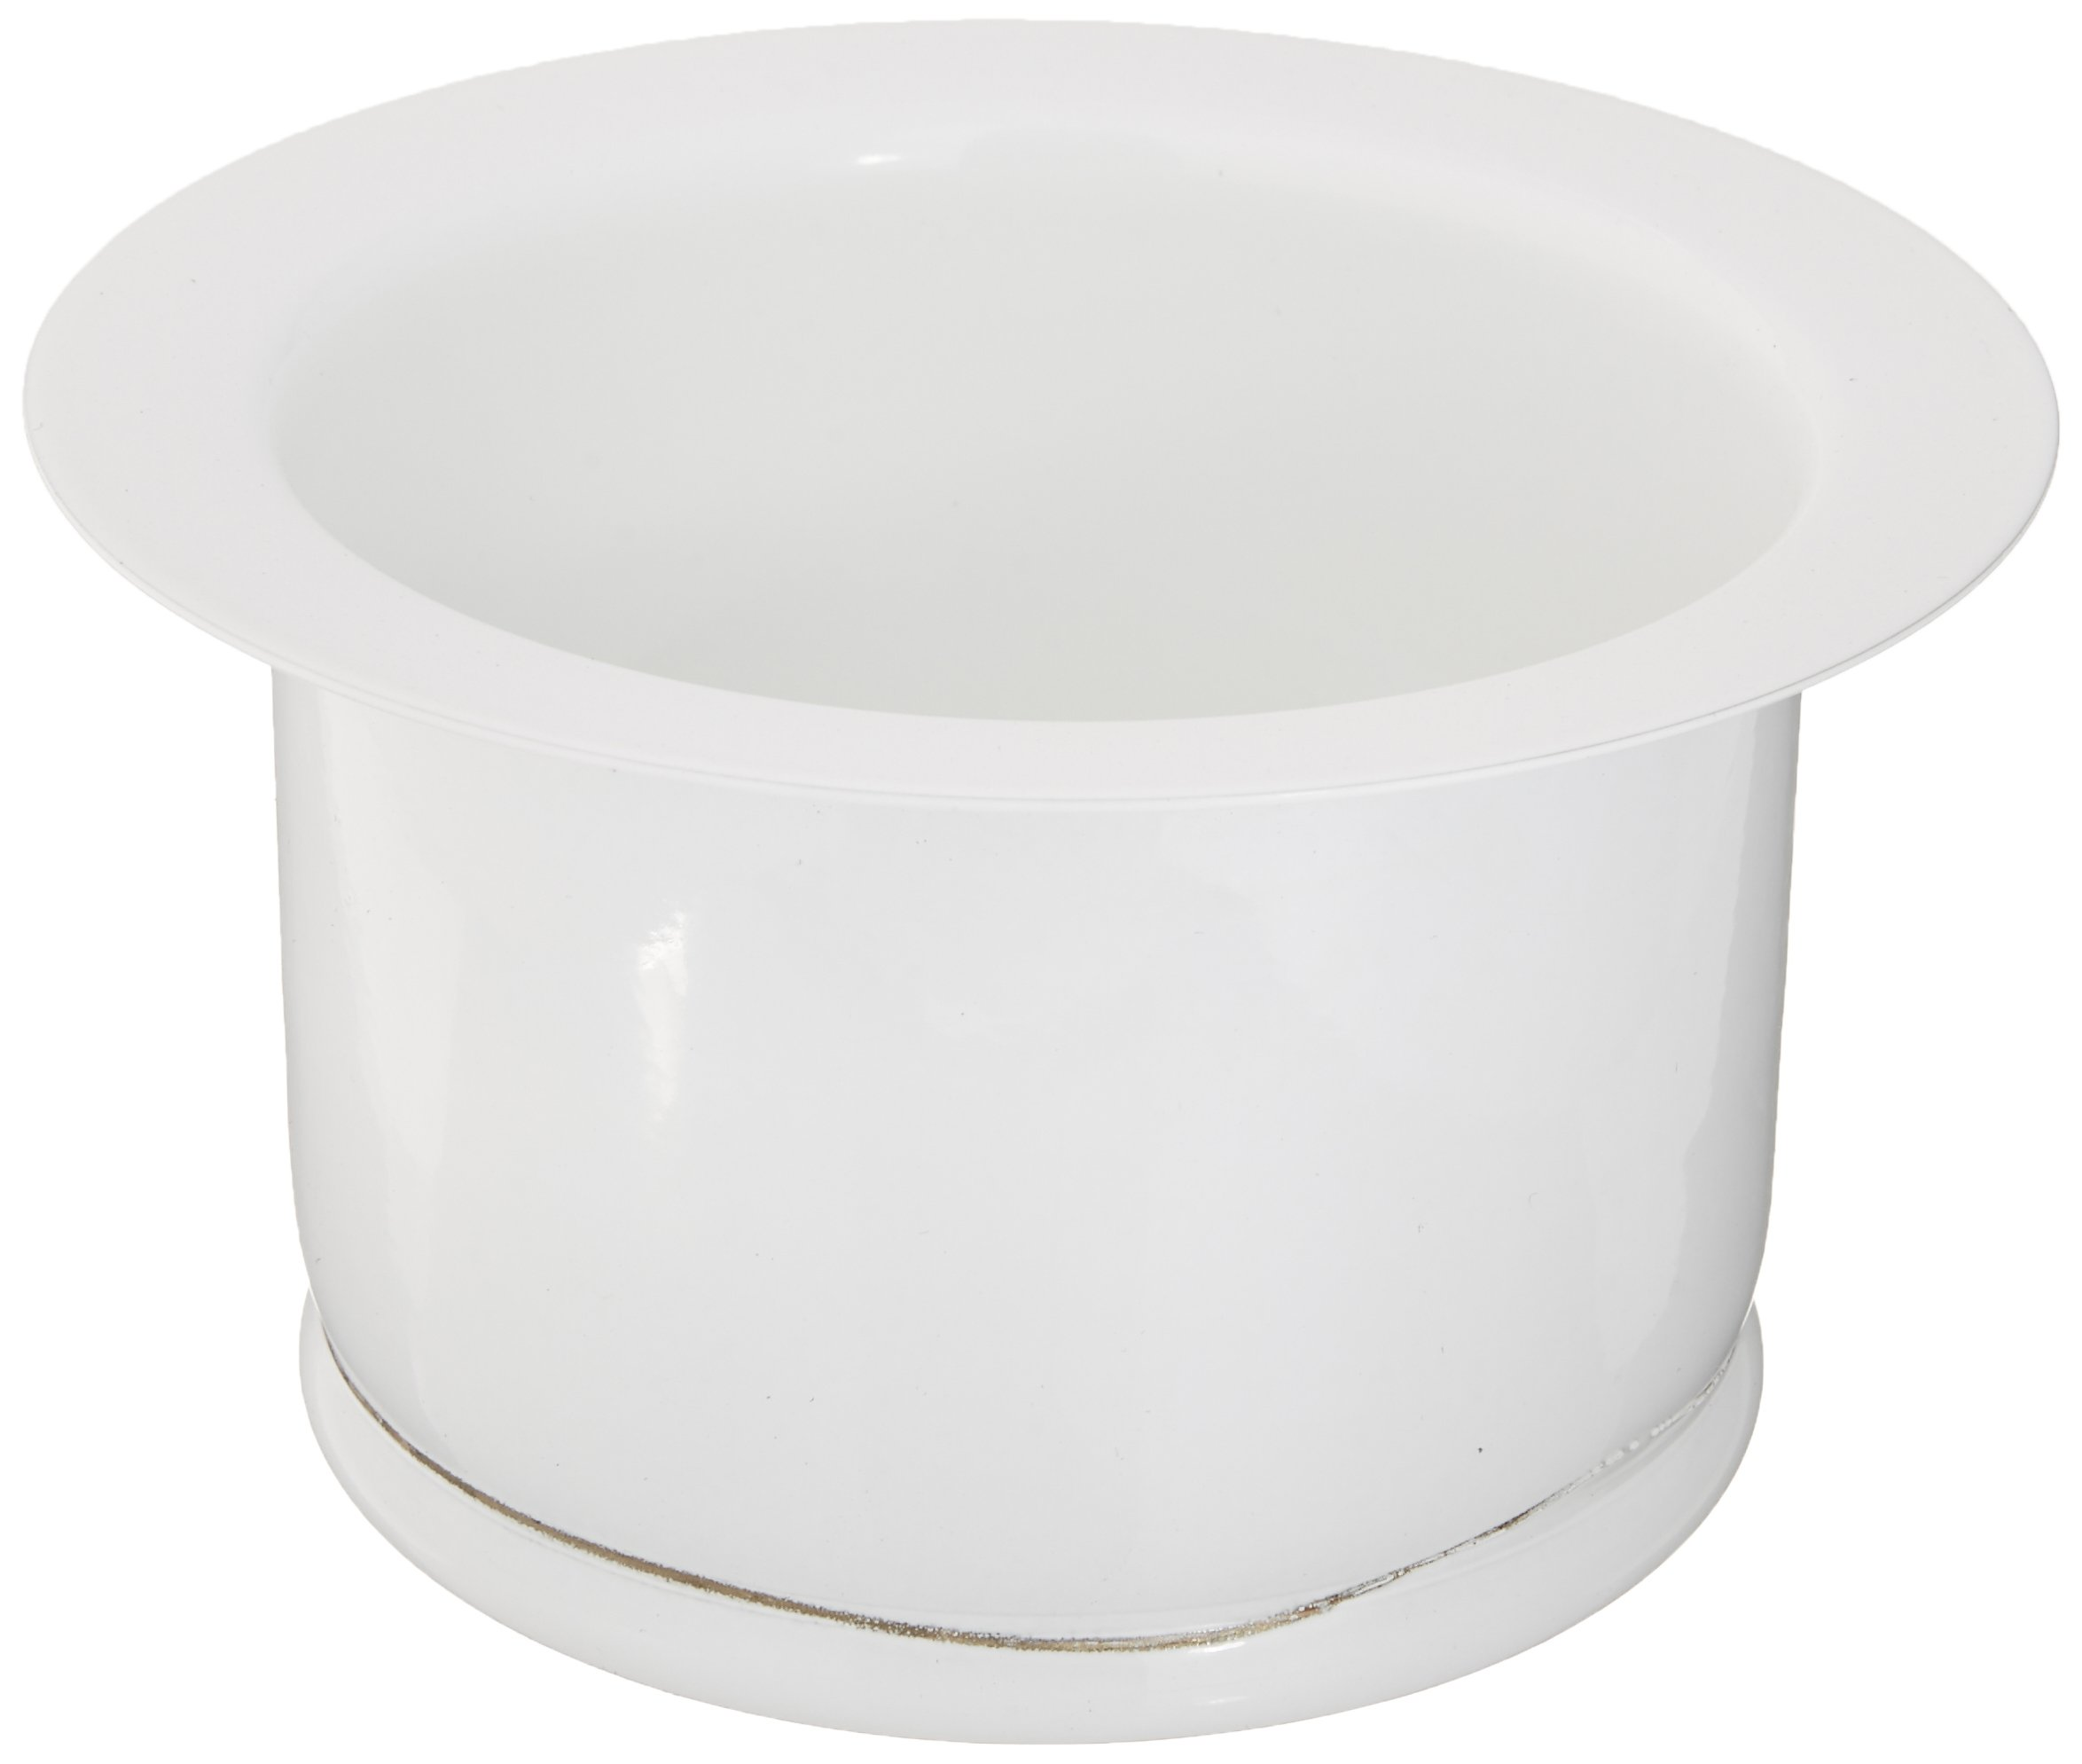 Rohl ISE10082WH 2-1/2-Inch Extended Throat for Fireclay Sinks and Shaws Sinks in White by Rohl